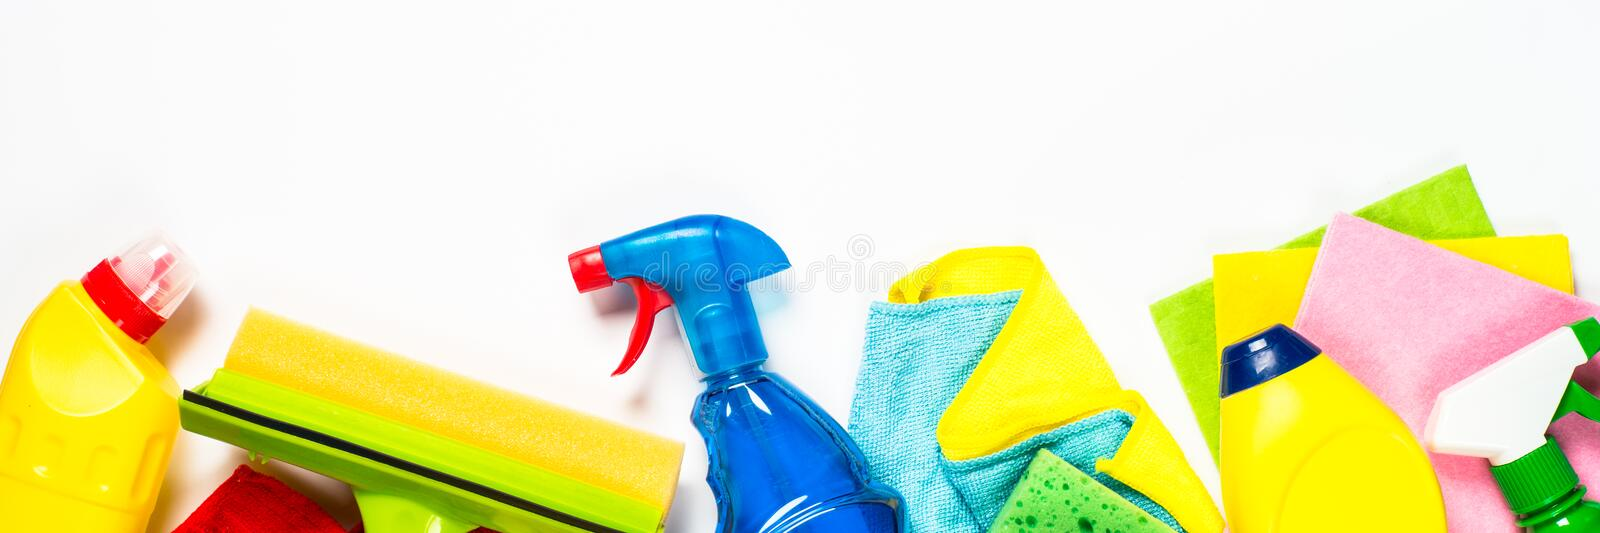 Cleaning product, household on white long format. Cleaning product, household, sanitary supplies on white background. Long banner format good for web with space stock photo